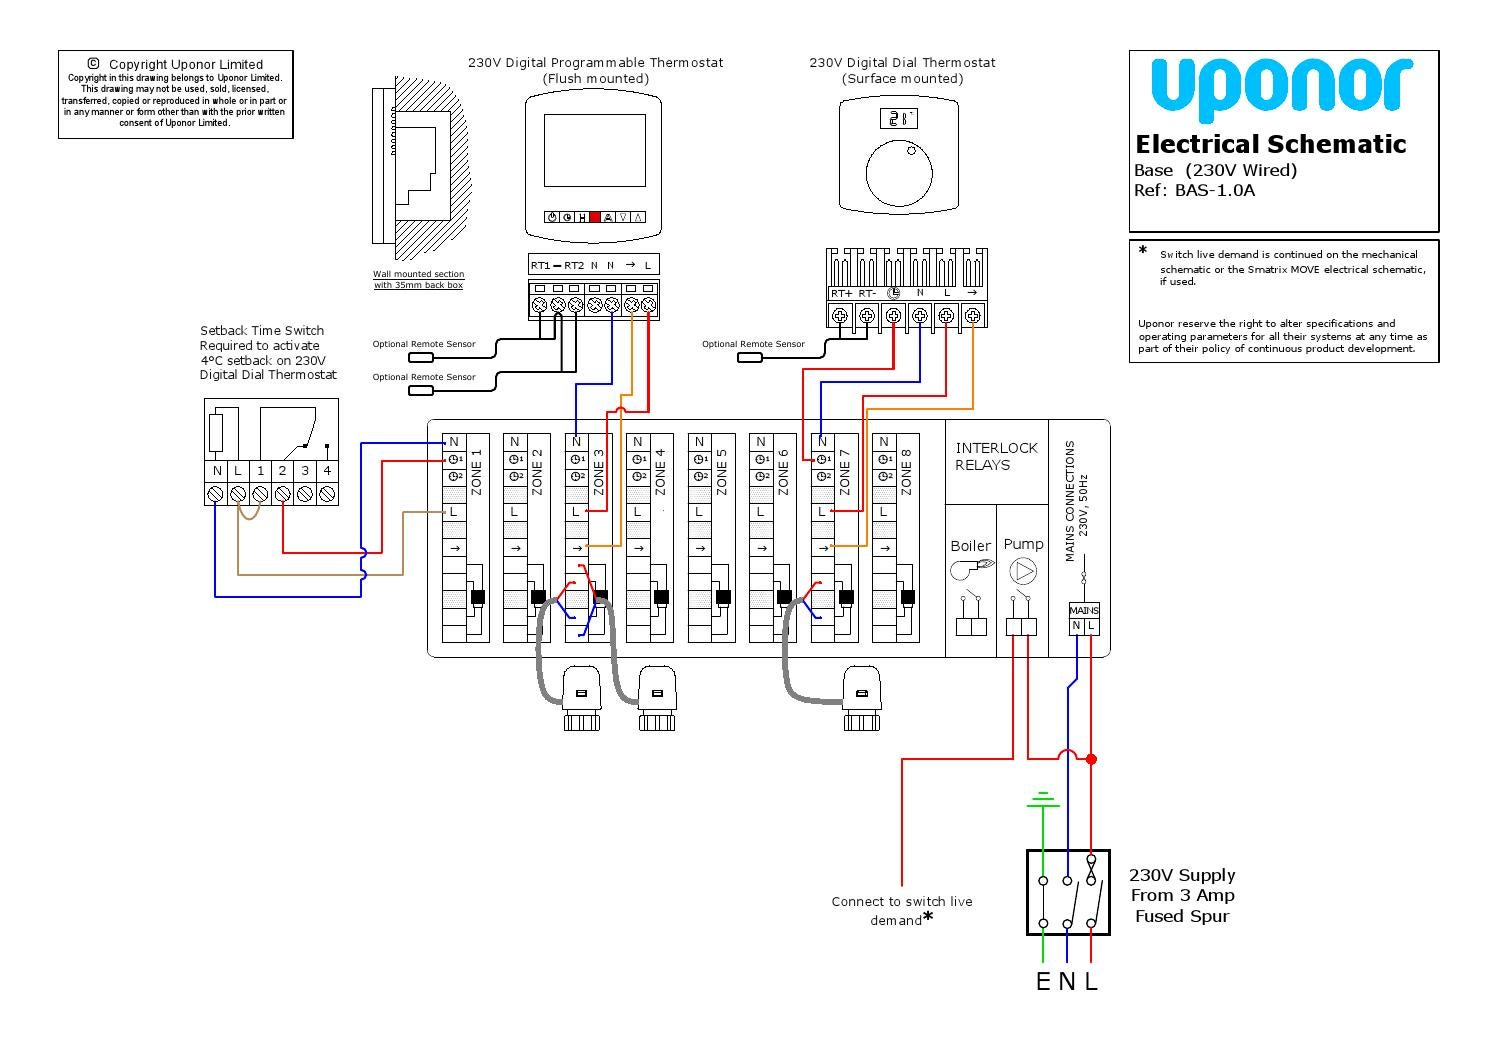 wiring diagram for electric underfloor heating dstv hd pvr installation 230v control system by uponor uk issuu